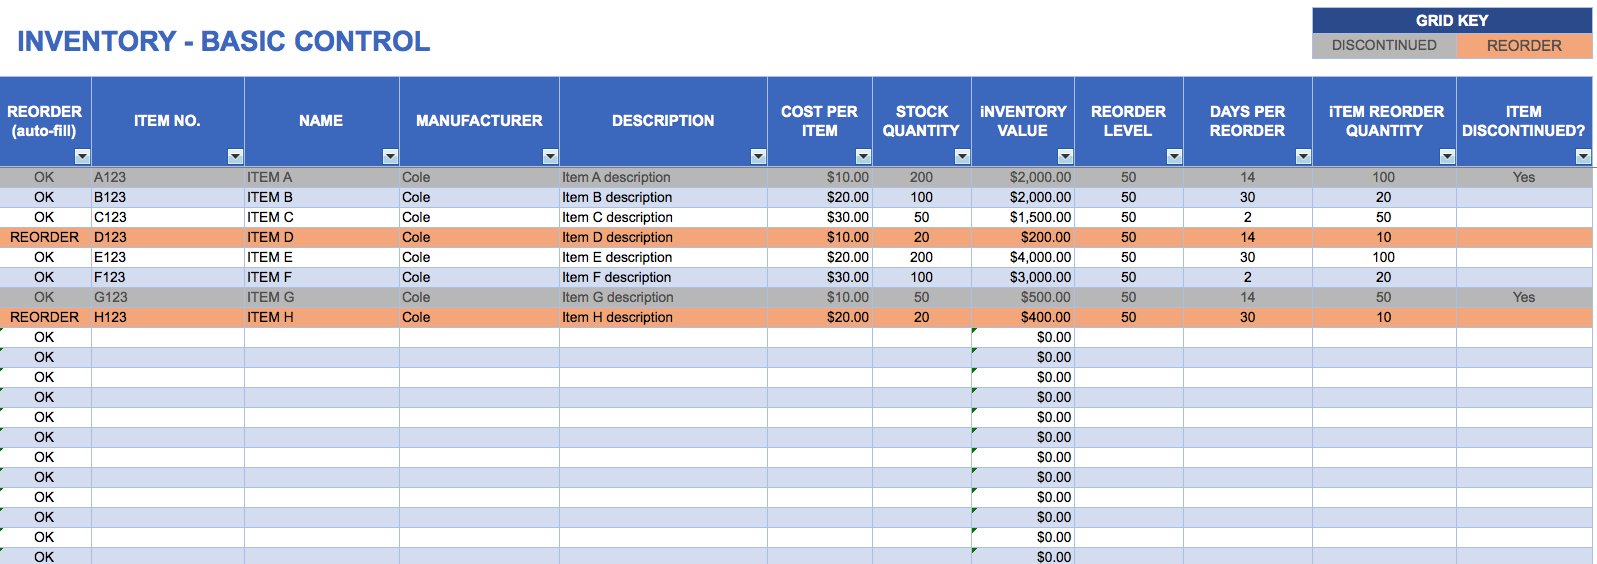 Inventory Template Excel Charlotte Clergy Coalition - How to use excel templates